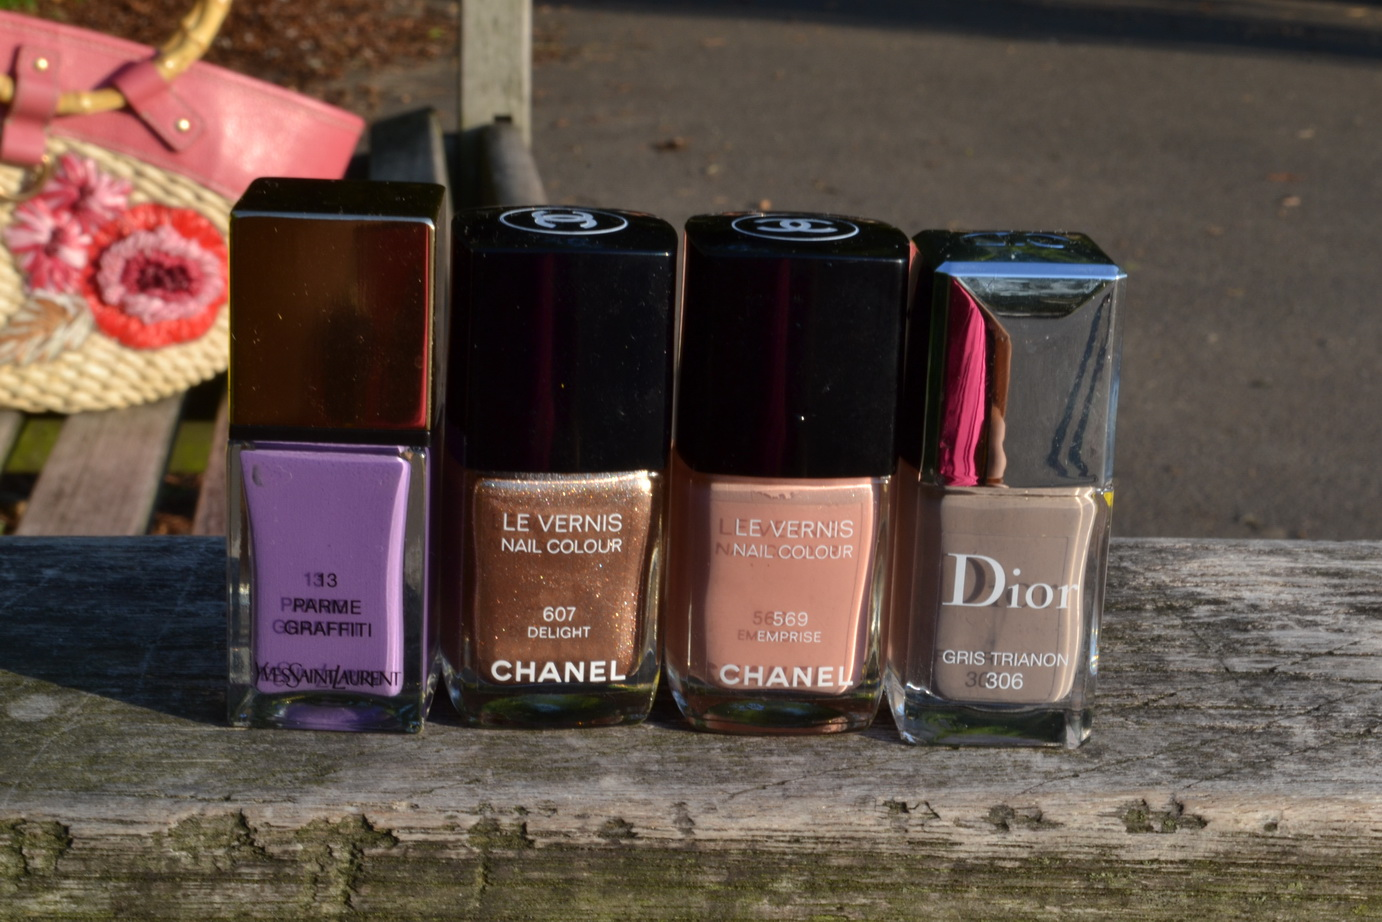 From right to left: YSL 'Parme Graffiti', Chanel 'Delight', Chanel 'Emprise', Dior 'Gris Trianon'